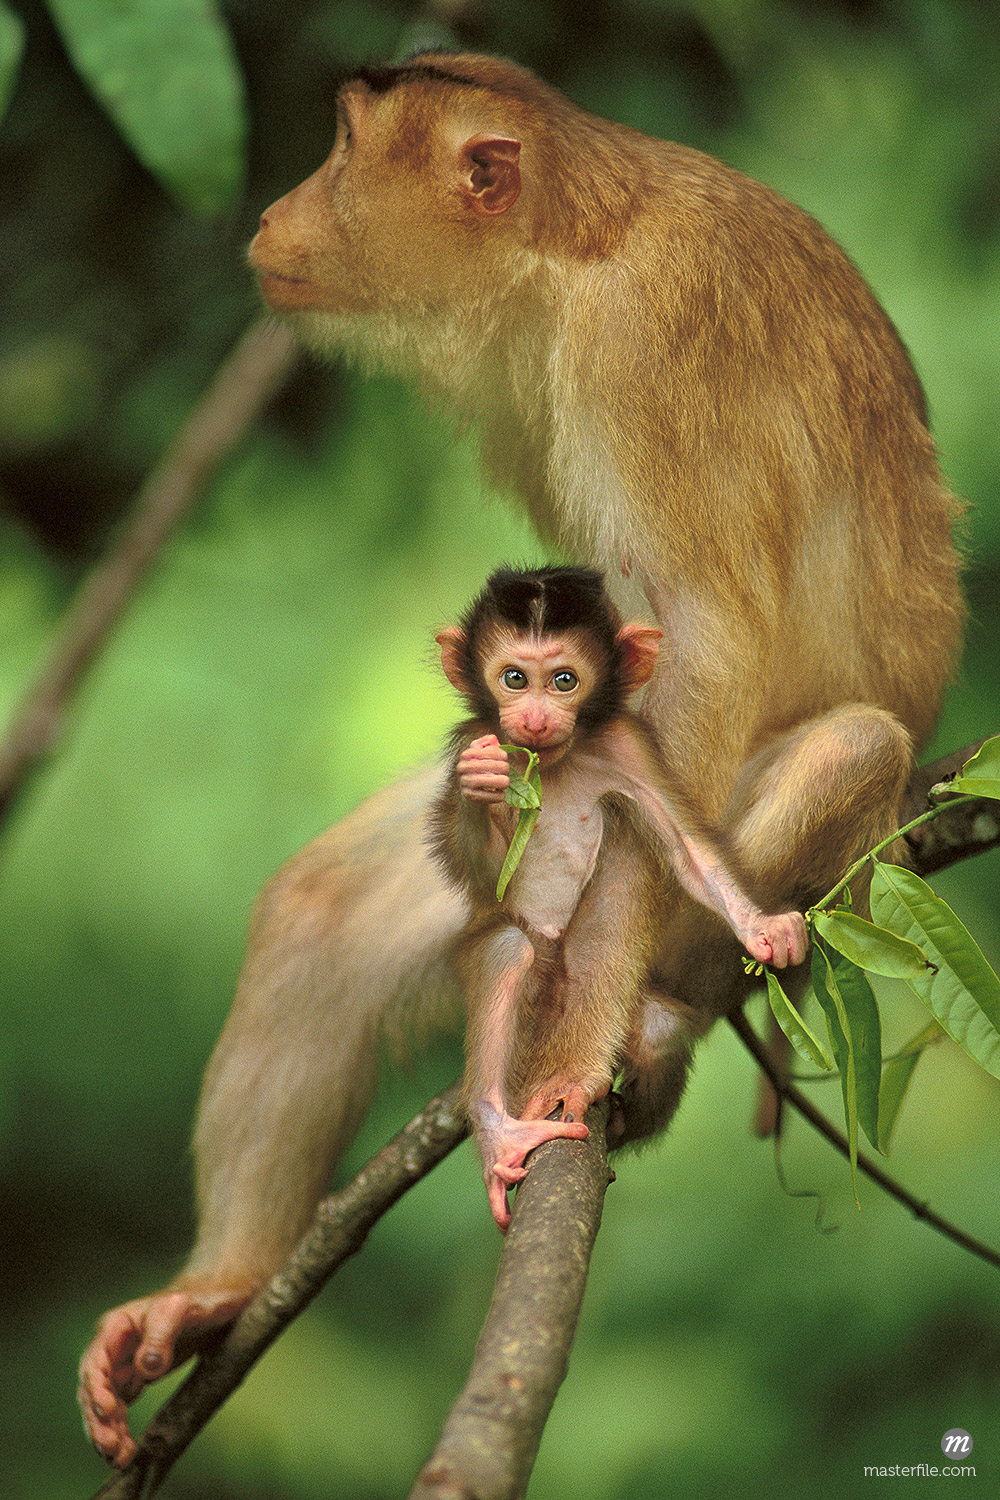 Pig-tailed macaque mother and infant, Macaca nemestrina, Bako National Park, Borneo © Masterfile